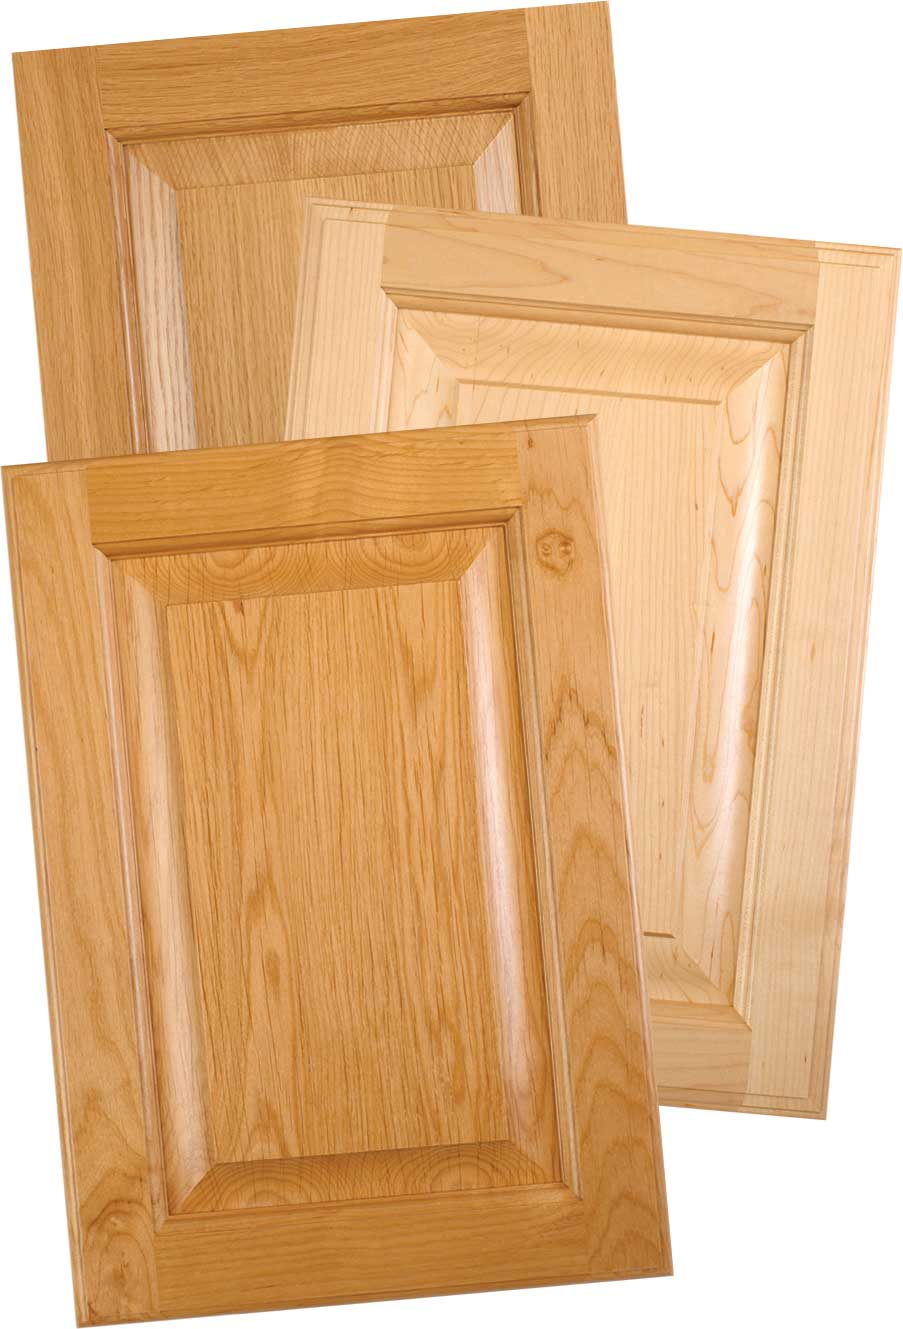 Taylorcraft cabinet door company introduces 1 thick for 1 door cabinet